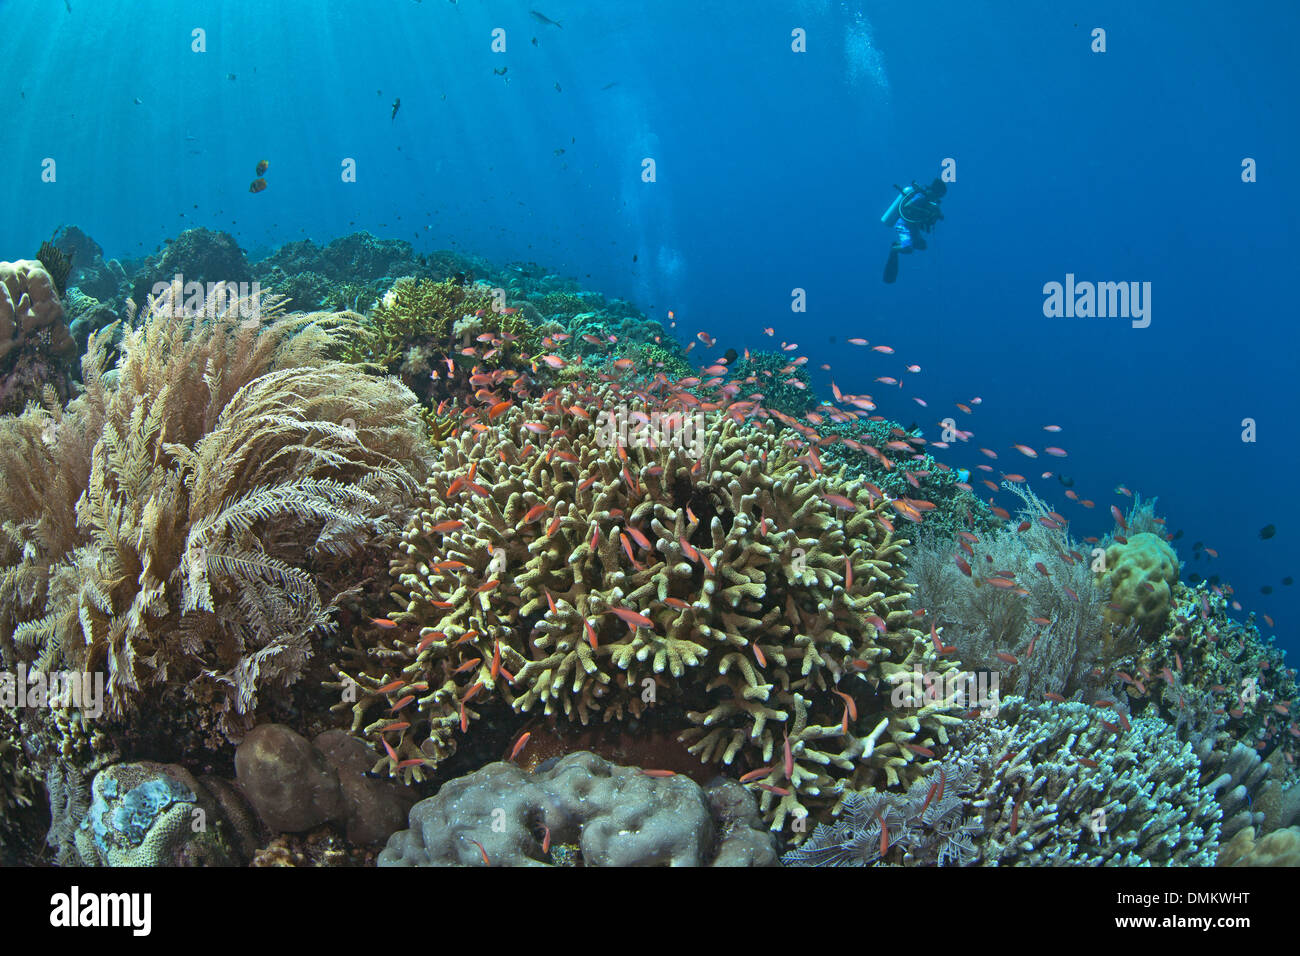 scuba diver hovers over coral reef with anthias tropical fish. Stock Photo